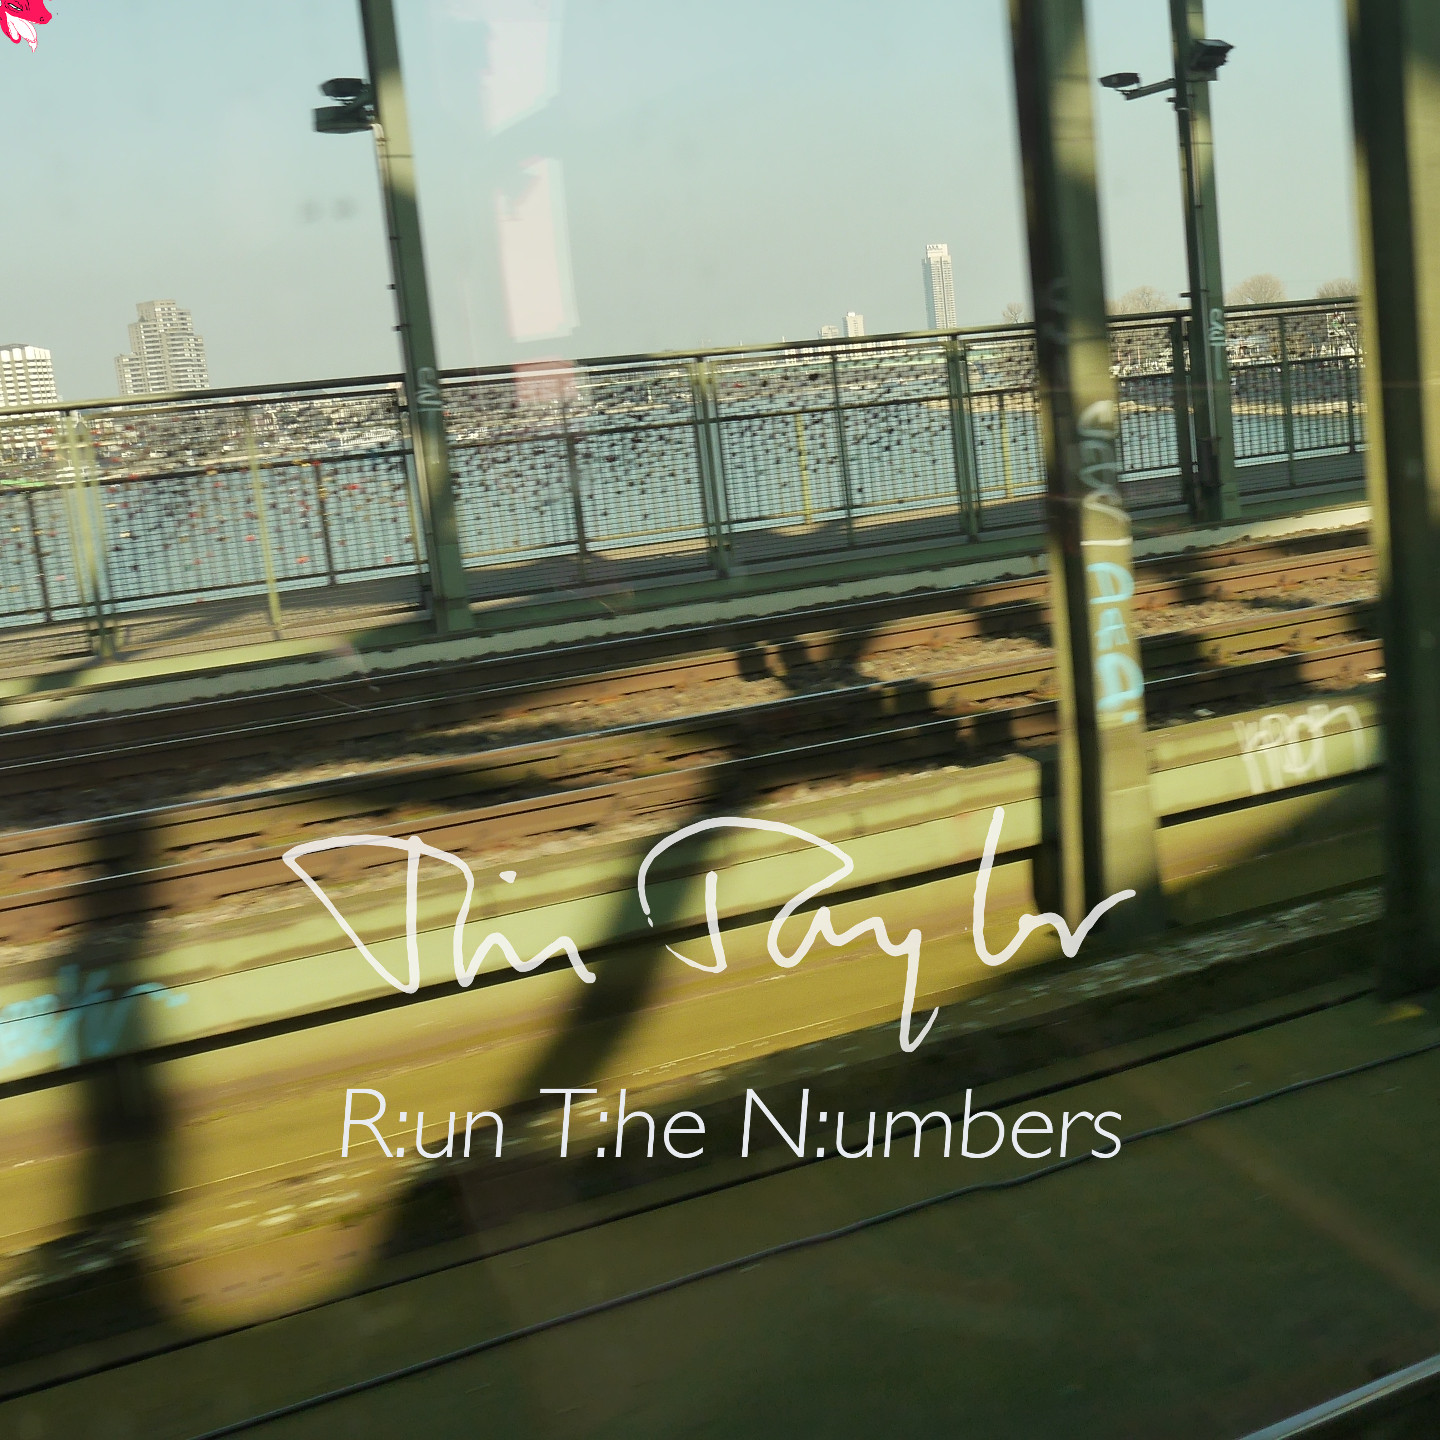 TRIS_TAYLOR_Run_The_Numbers_PinkLizardMusic_medium